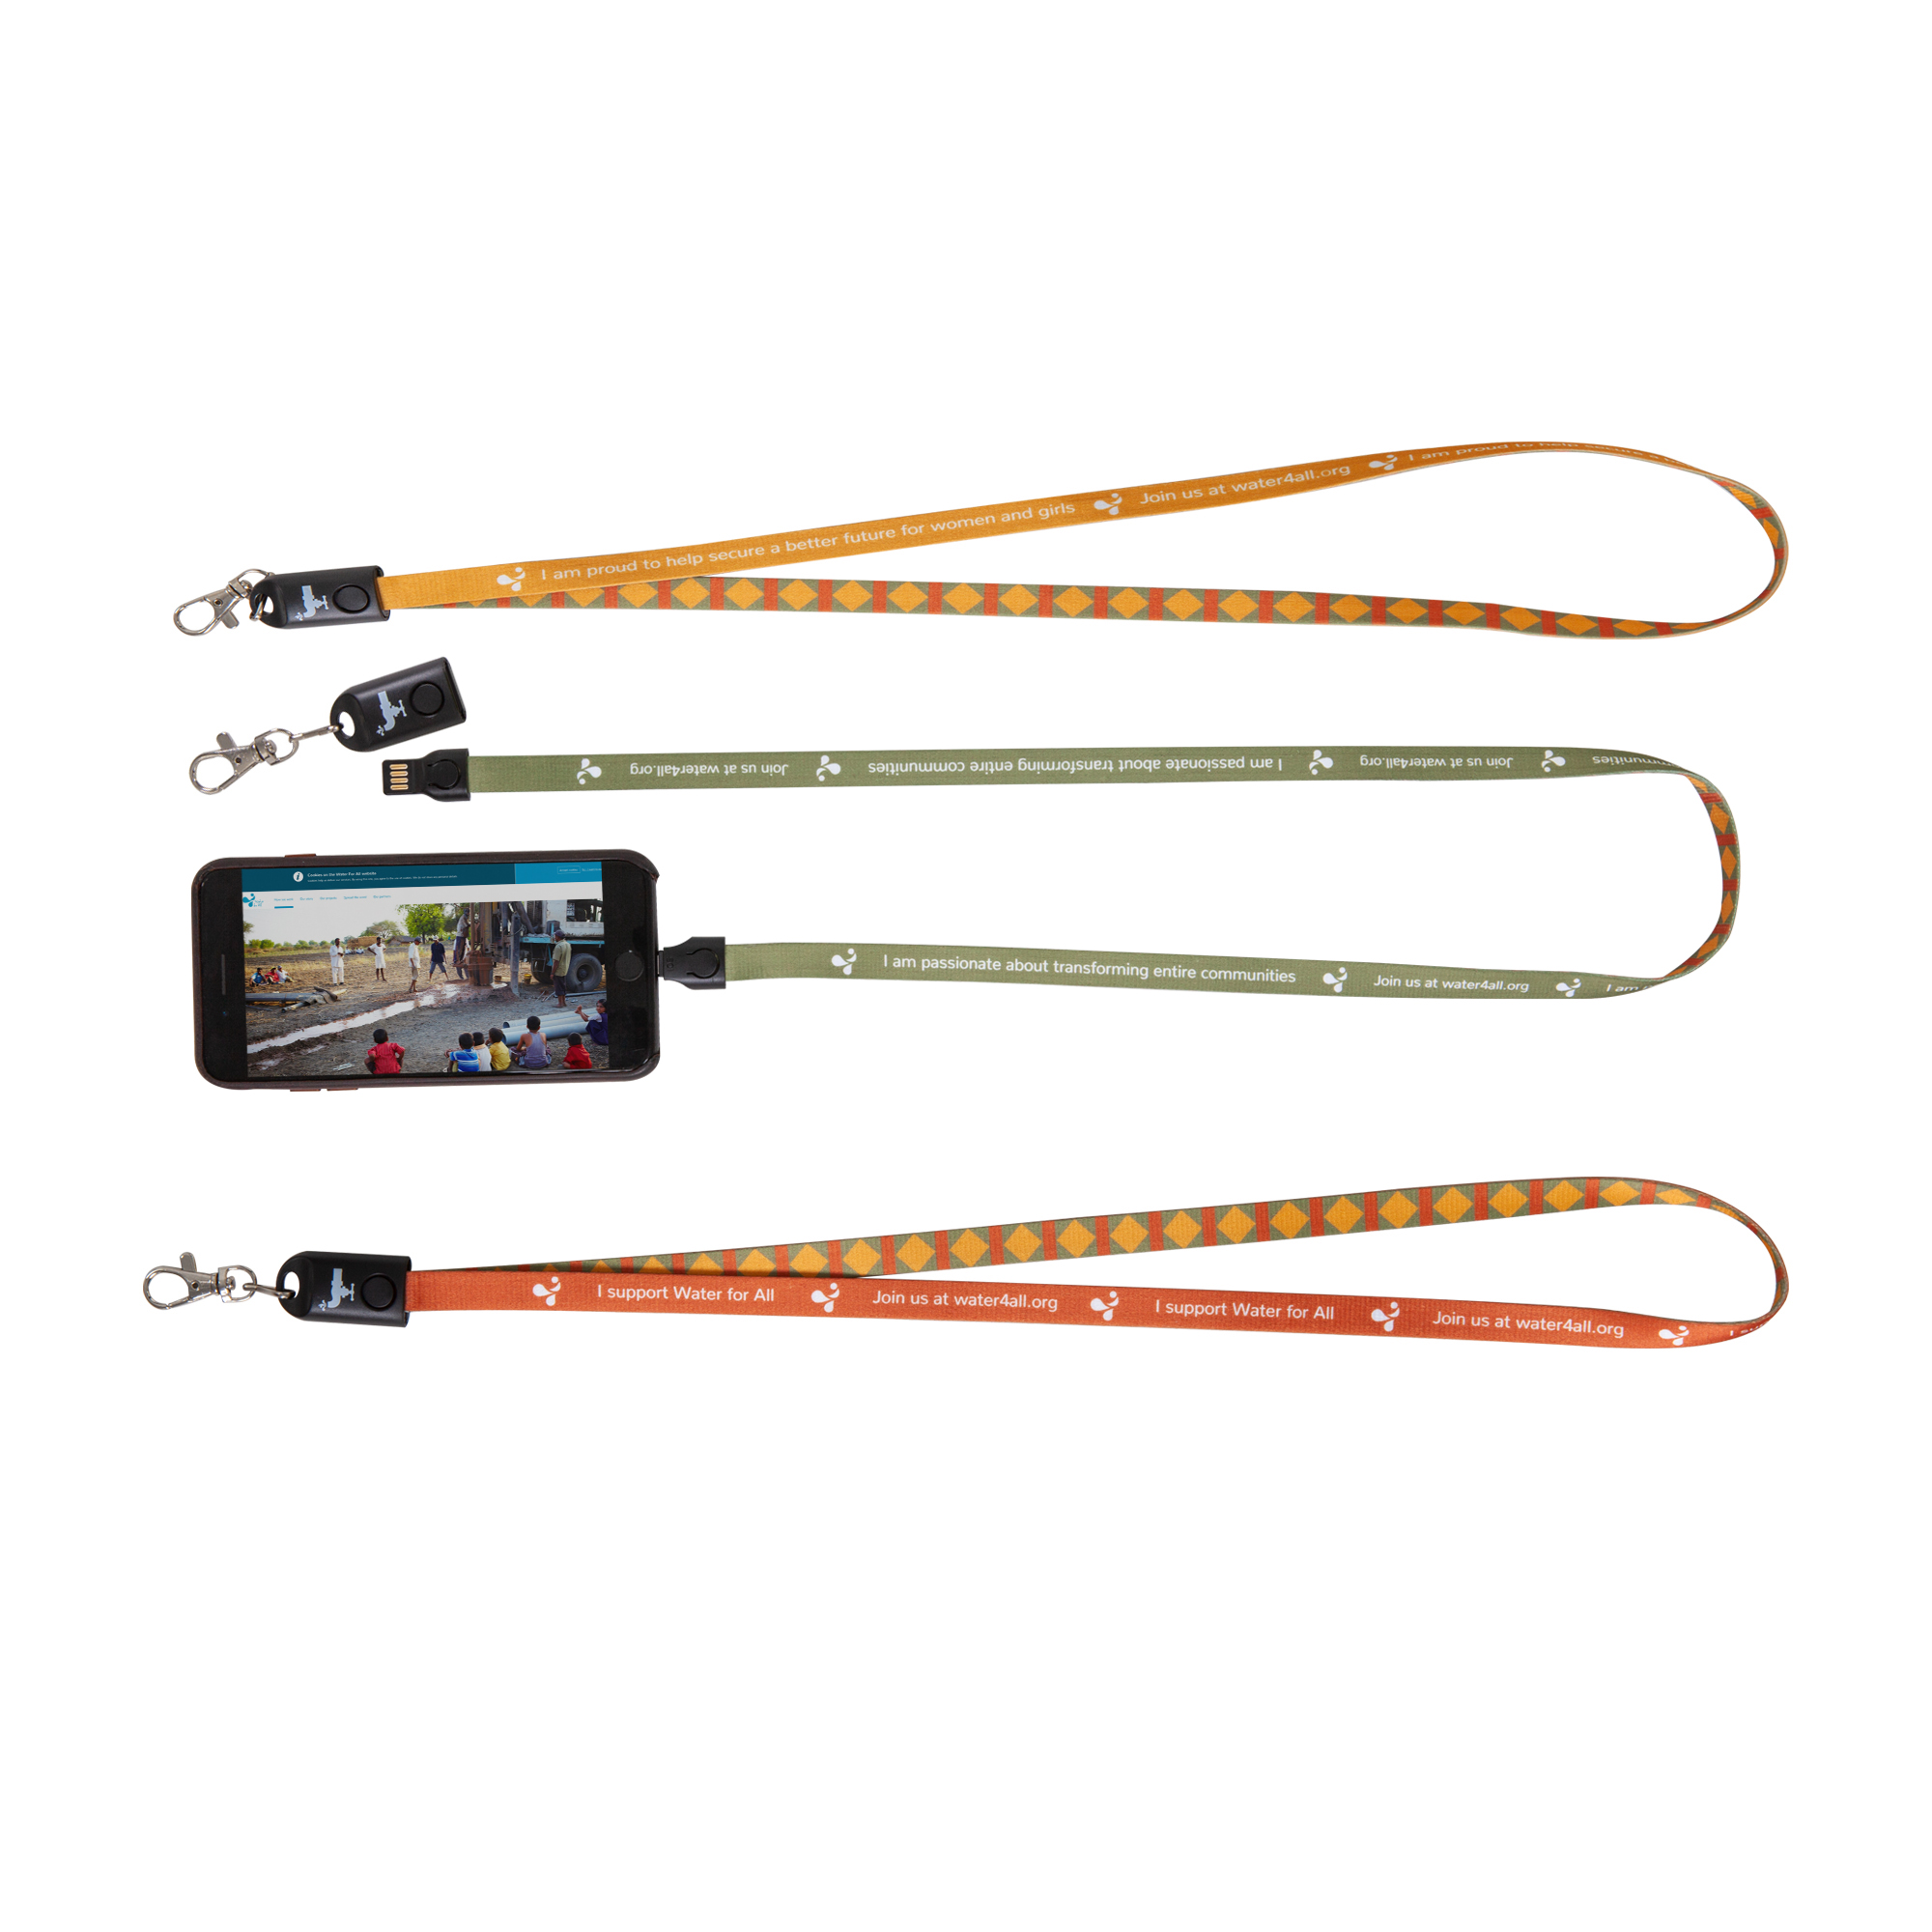 <p>A useful and stylish 2-in-1 multifunction lanyard with an integrated USB charging cable. Works for both iPhone and devices with Micro USB, all in the same contact!</p>